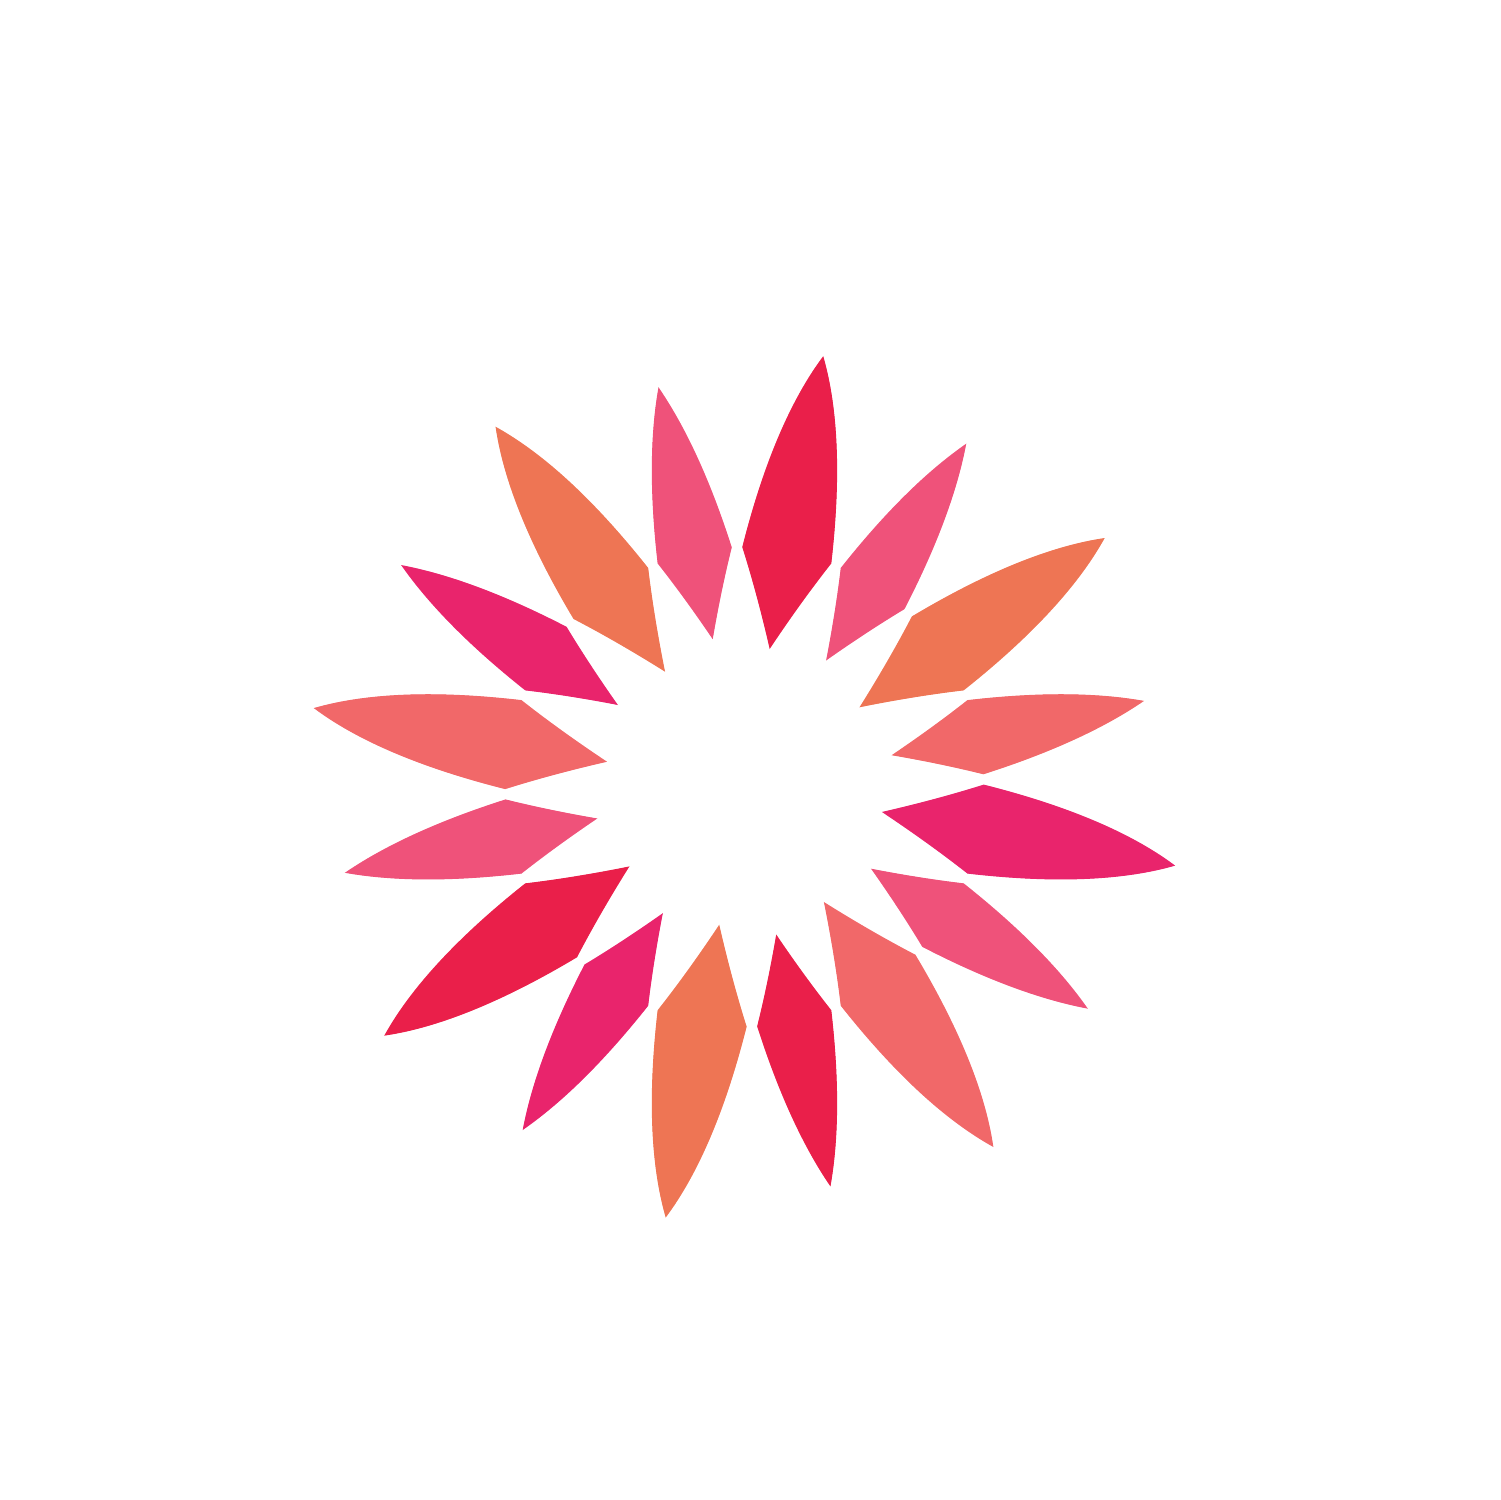 SOC-pink-orange-logo-white-01.png